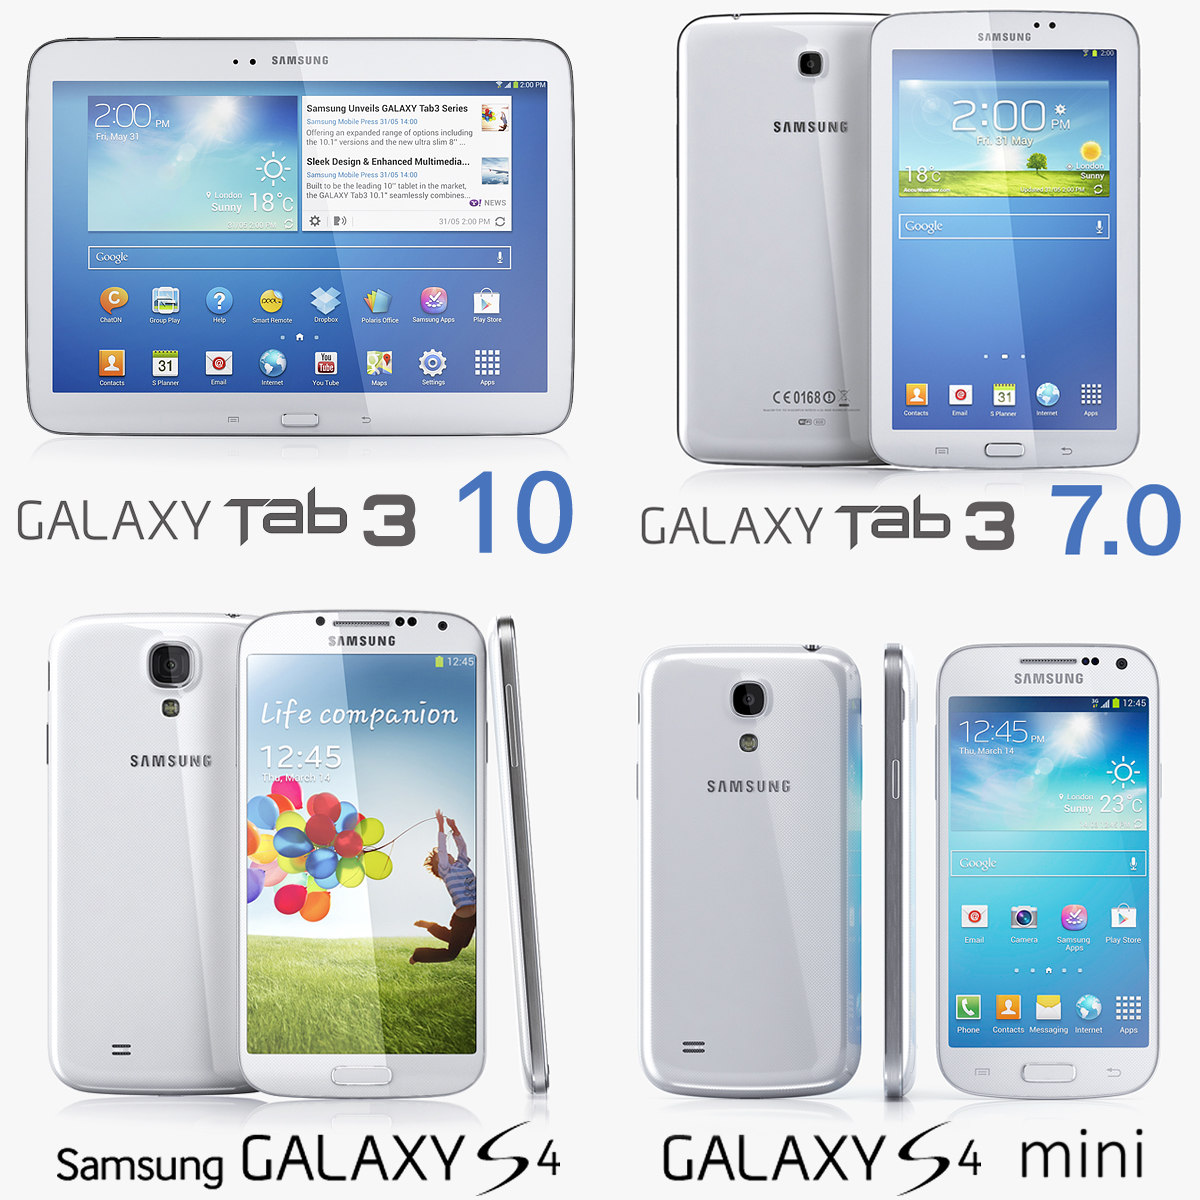 Samsung_GALAXY_Collection_2013.jpg